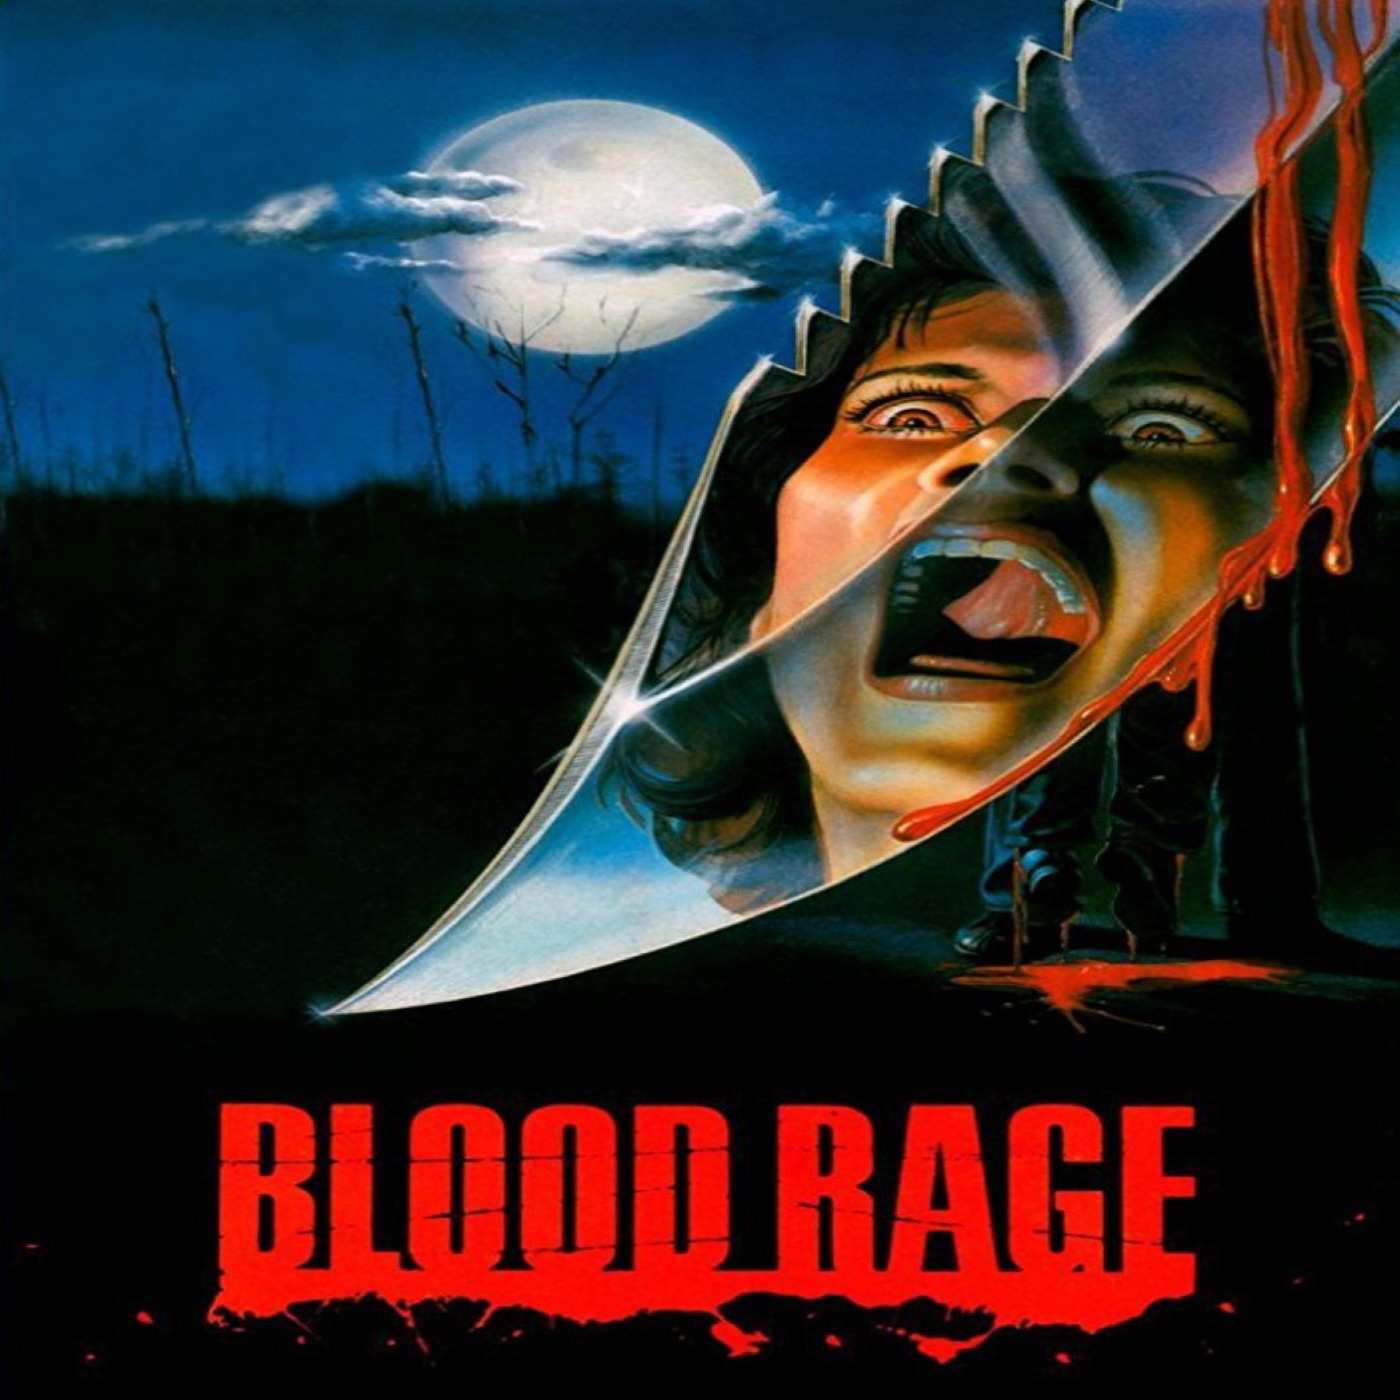 GVN Presents: They Called This a Movie - Blood Rage (1987)